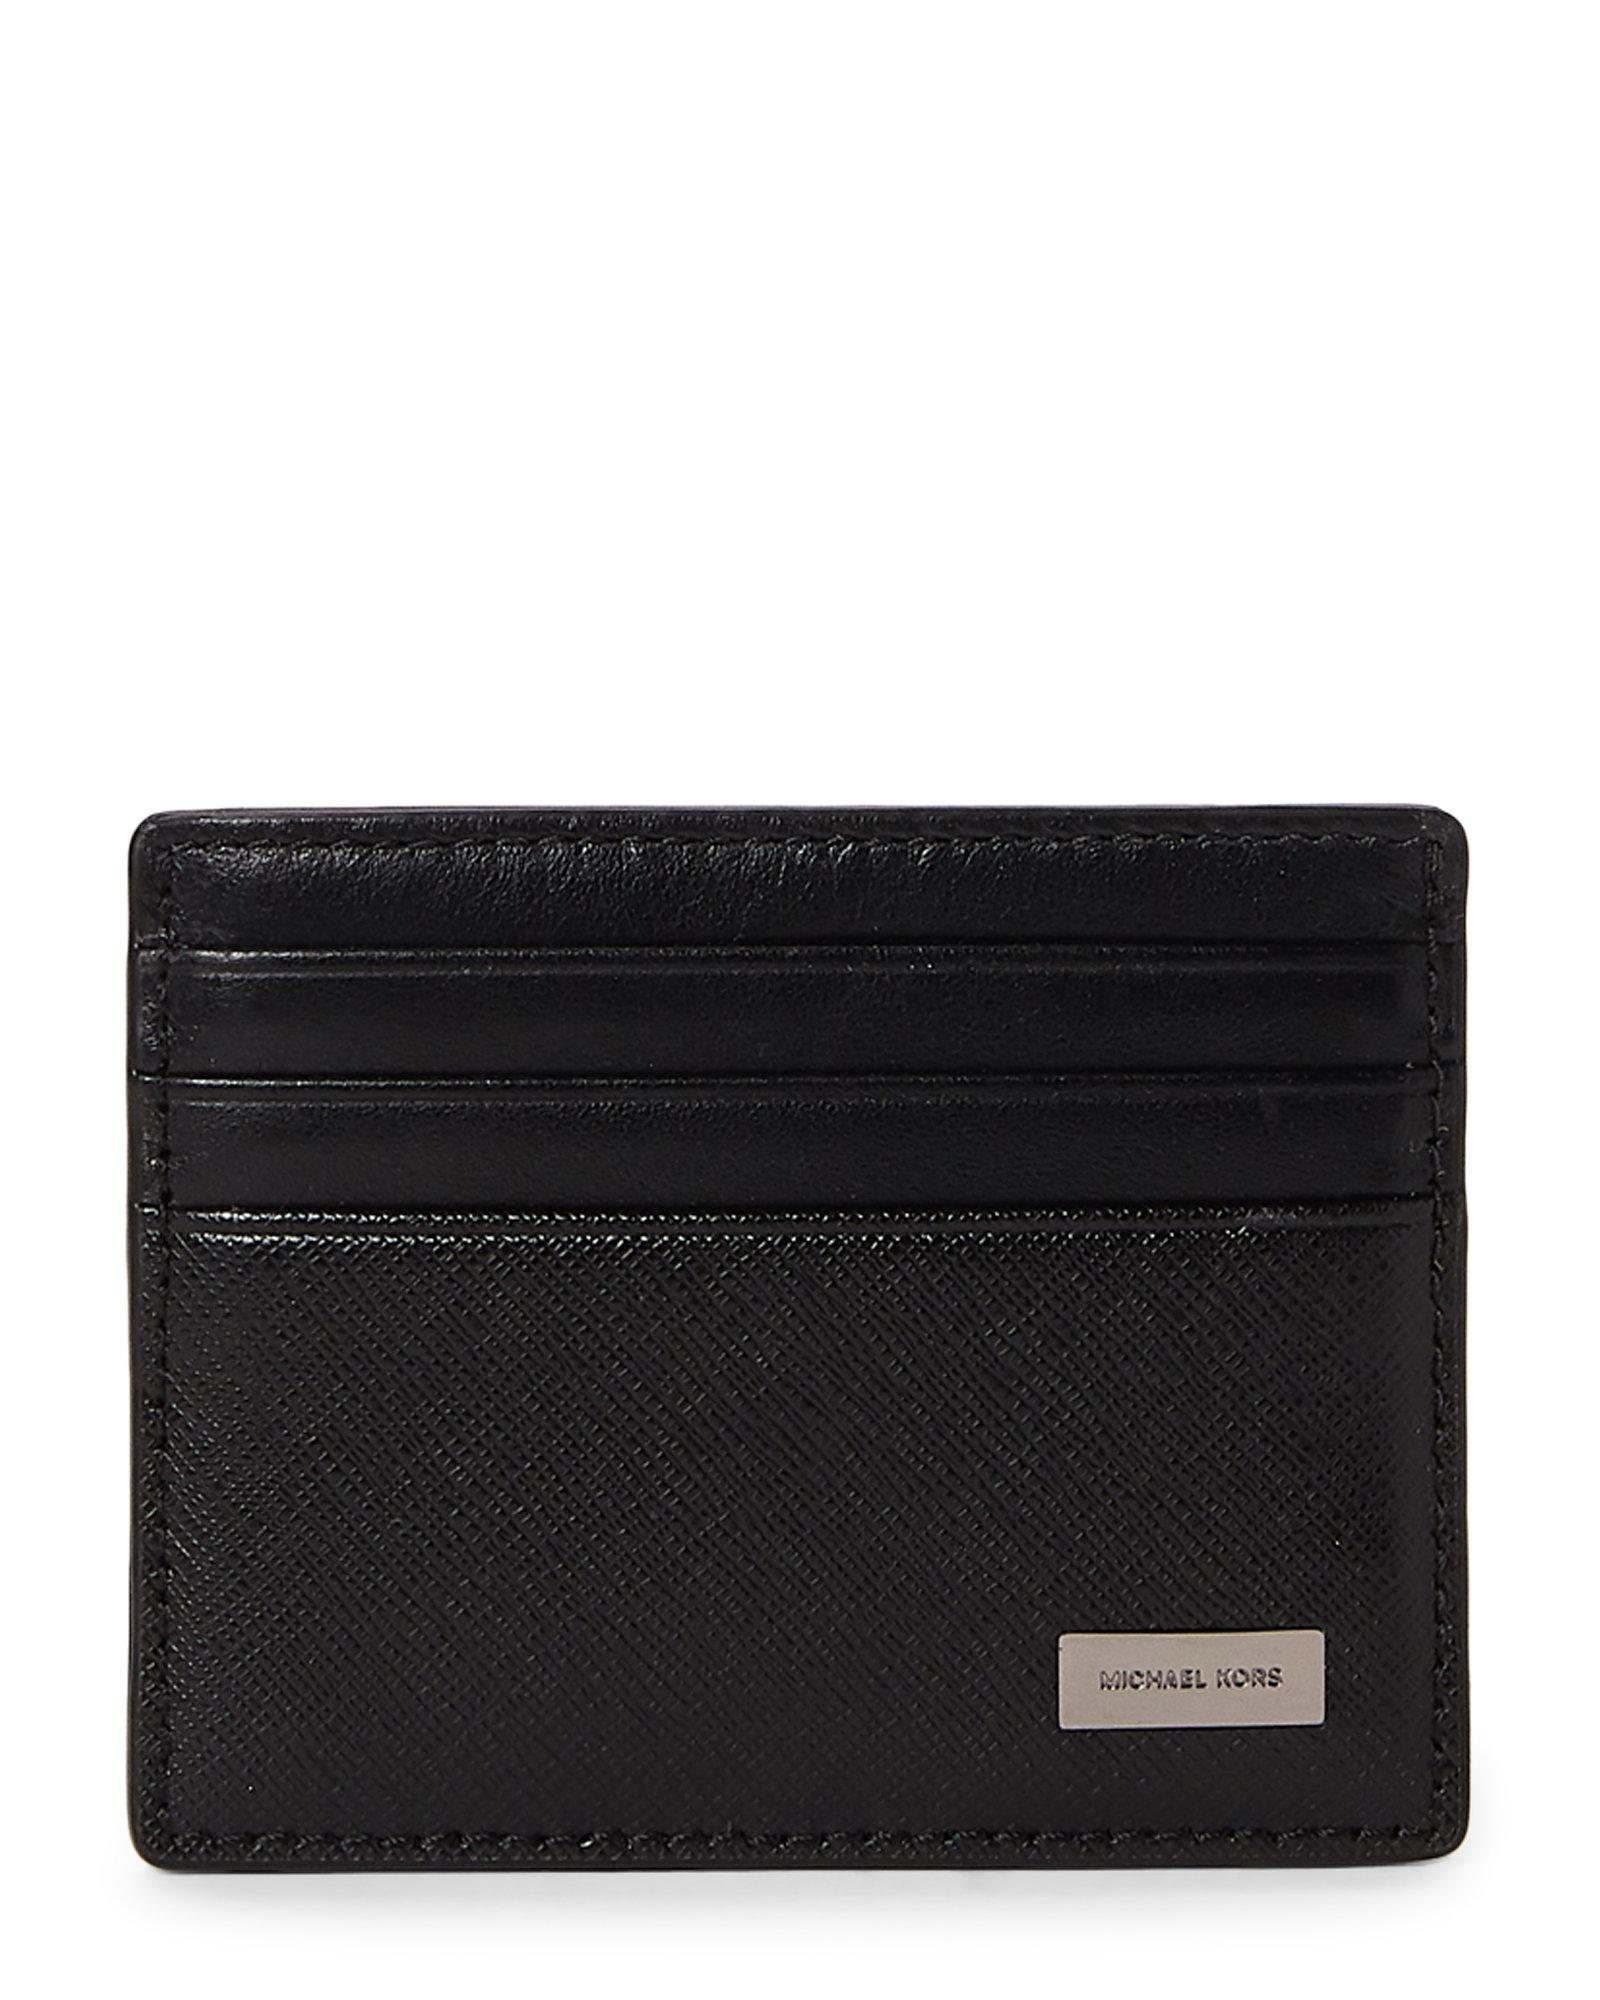 00332f7cd6805 Lyst - Michael Kors Black Leather Tall Card Case in Black for Men